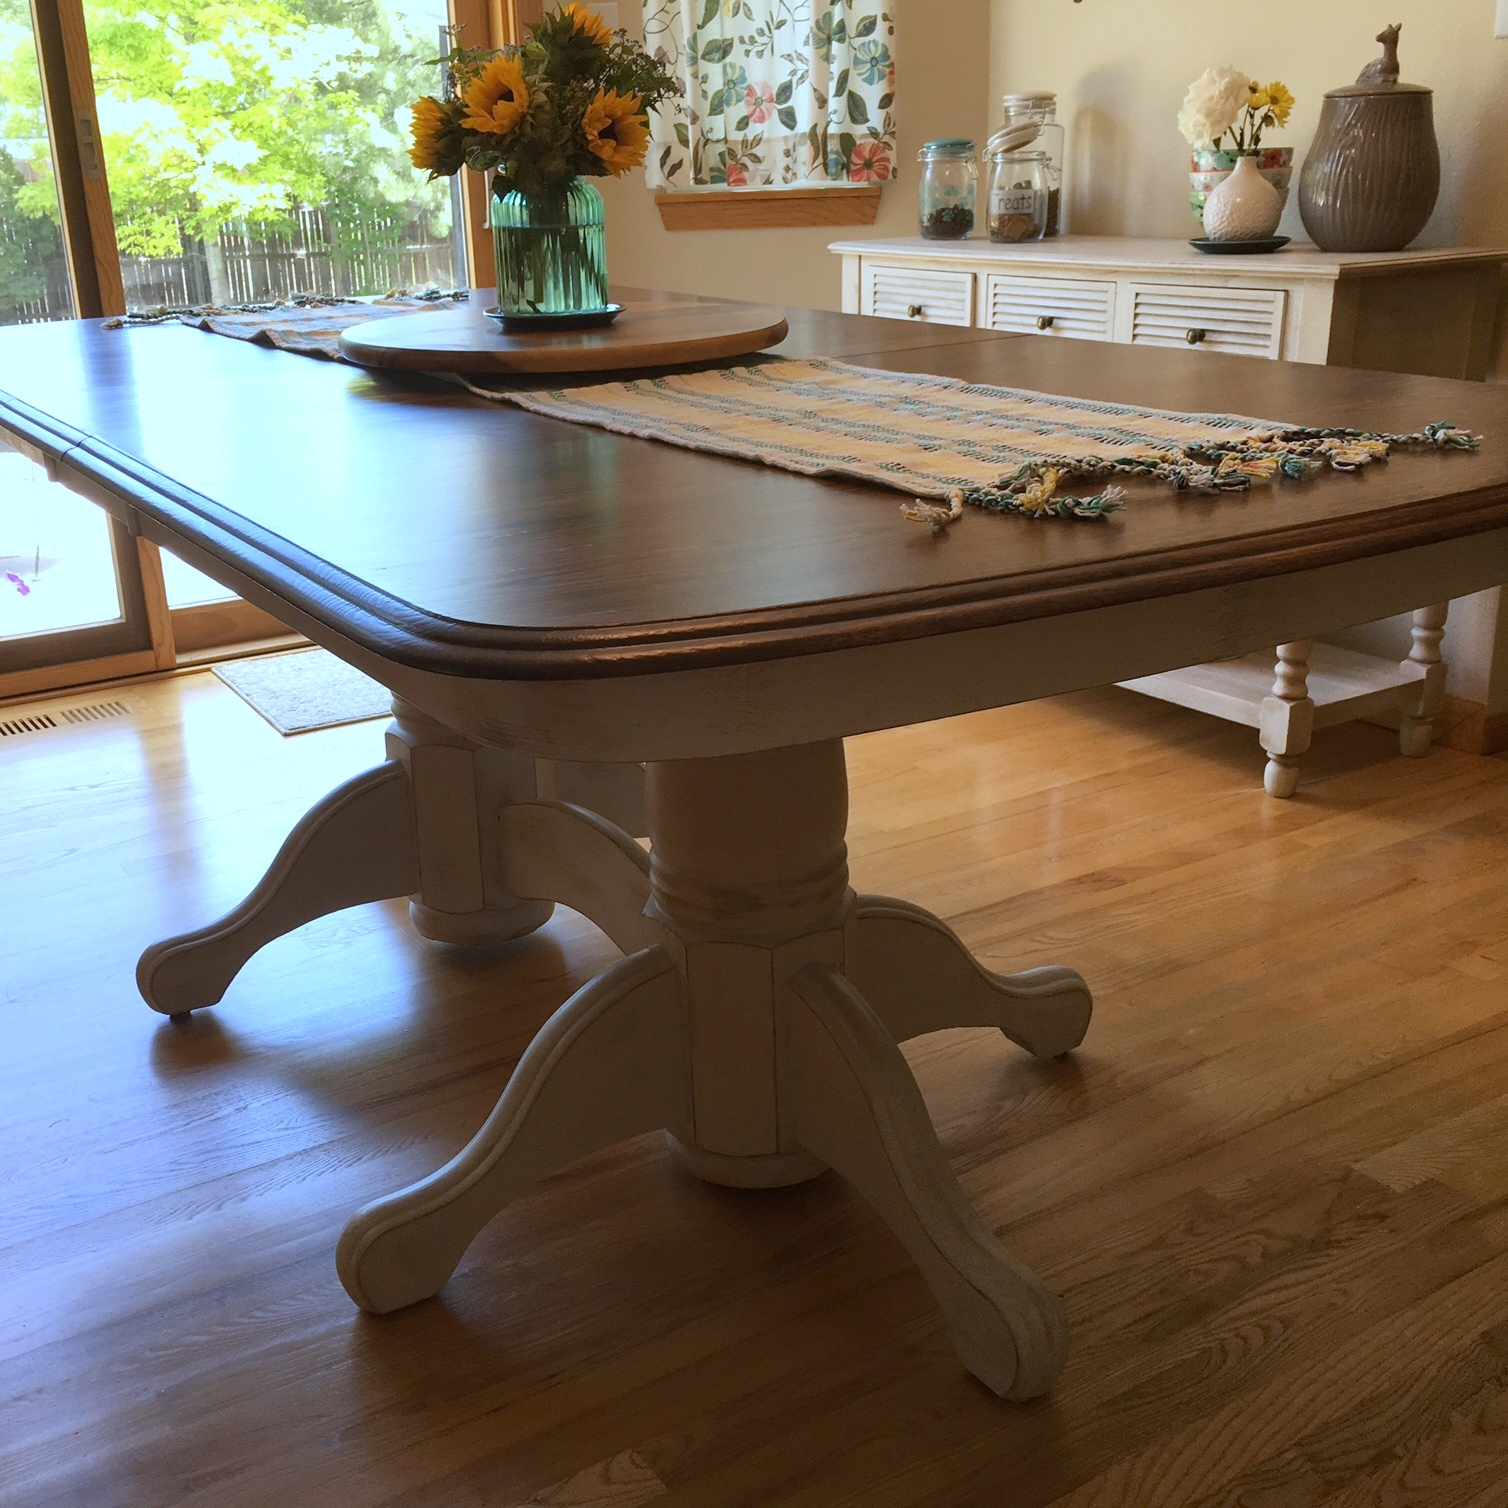 Refinish Kitchen Table...